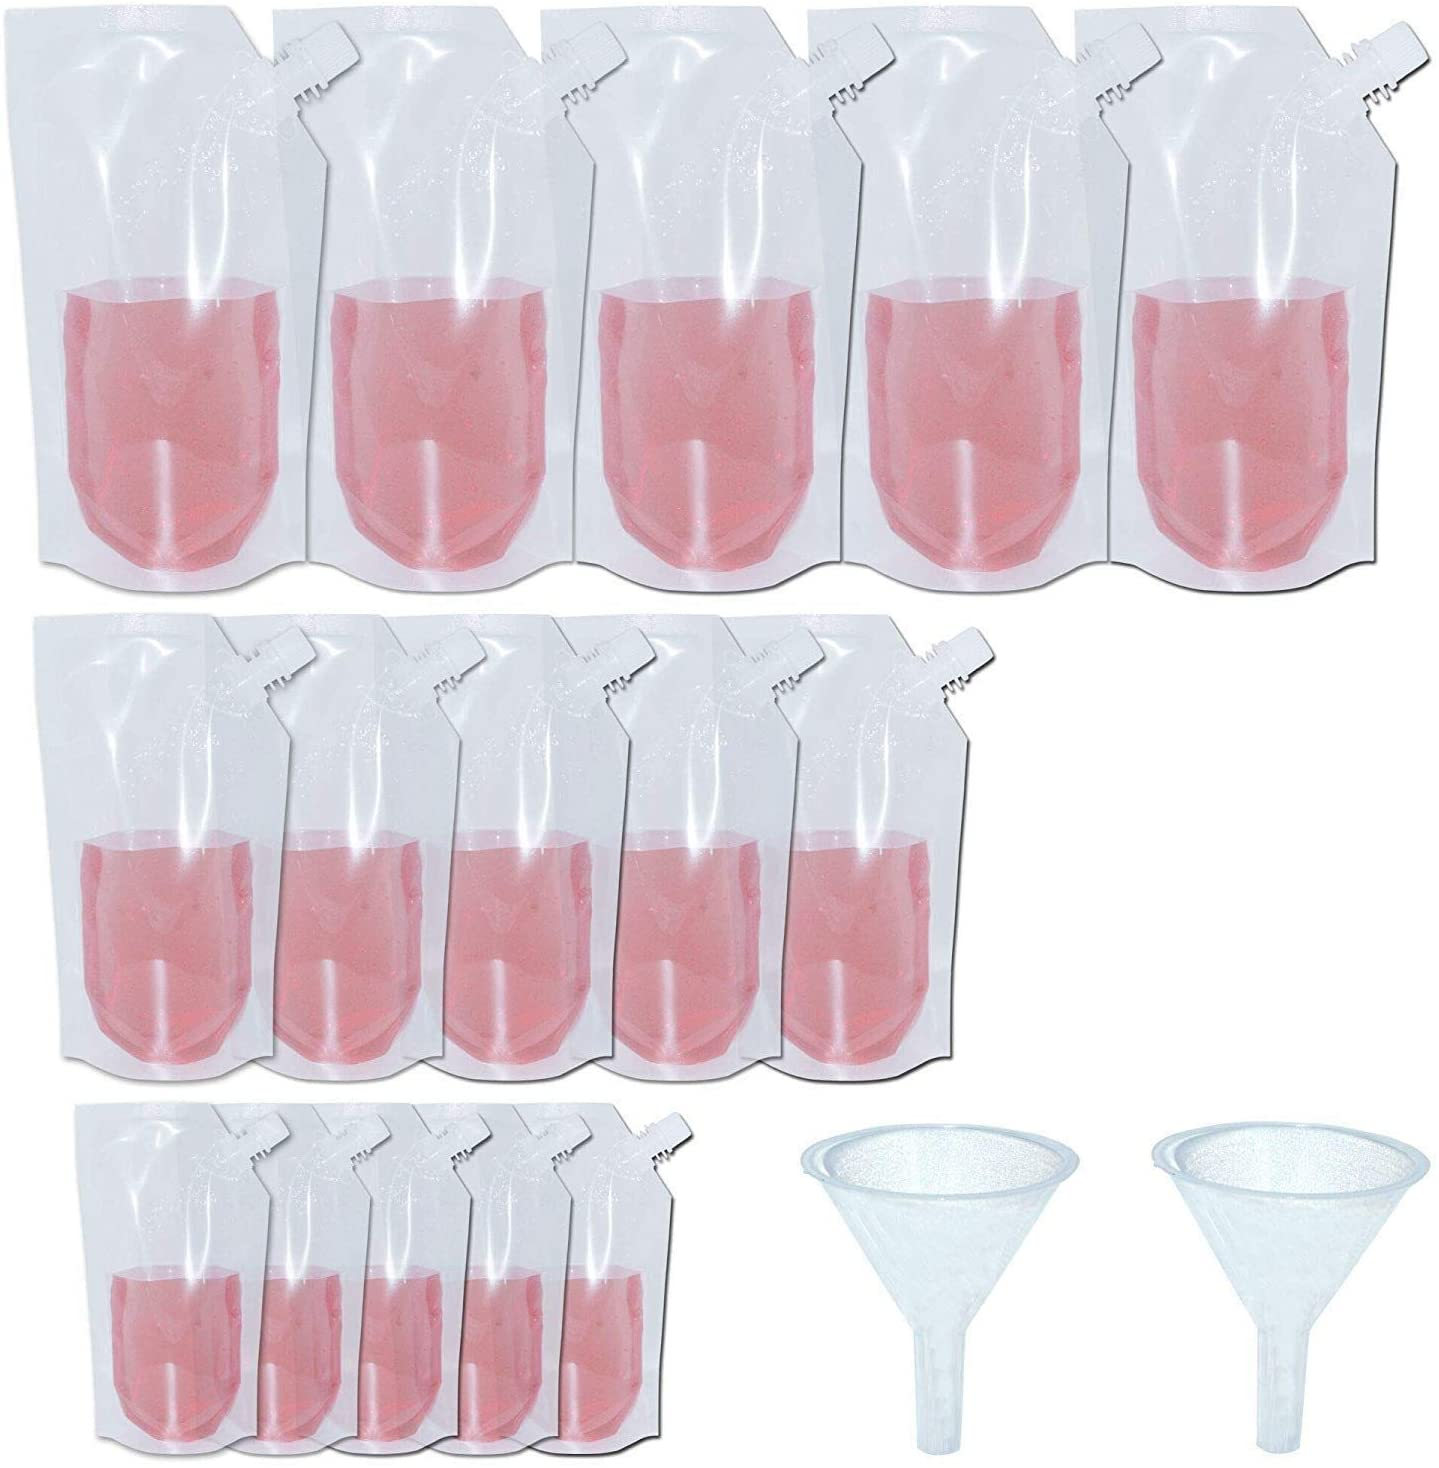 yushulin concealable collapsible liquor bags with funnel